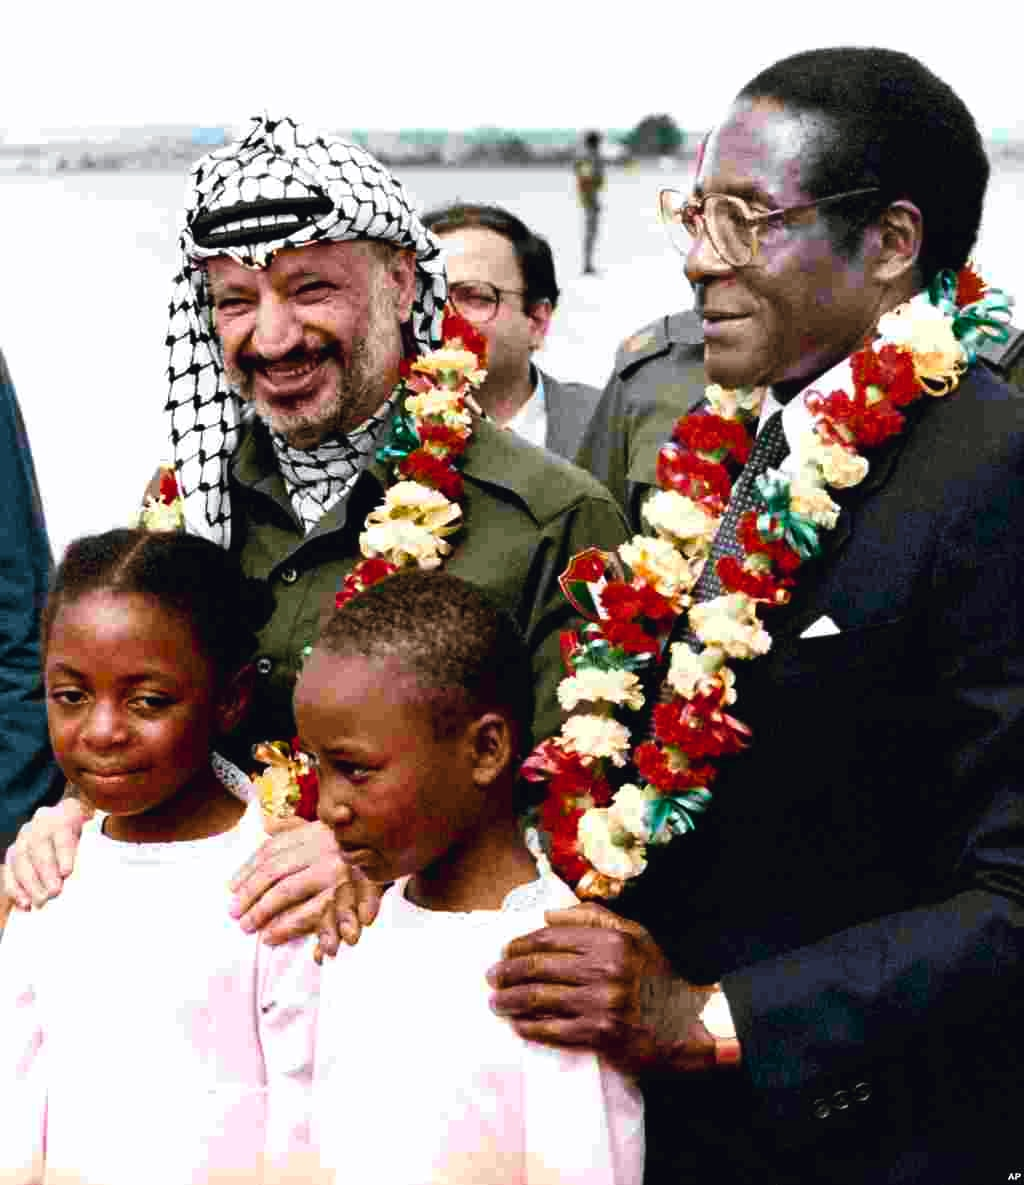 Zimbabwean Prime Minister Robert Mugabe, right, and Yasser Arafat, left, pose for photos after being garlanded by two 10-year-old school girls, Jean Chitanda, left, and Tsitsi Chikasha, on Arafat's arrival at Harare Airport, Zimbabwe, April 14, 1987, to attend a meeting of the Non-aligned Movement's Committee on Palestine.